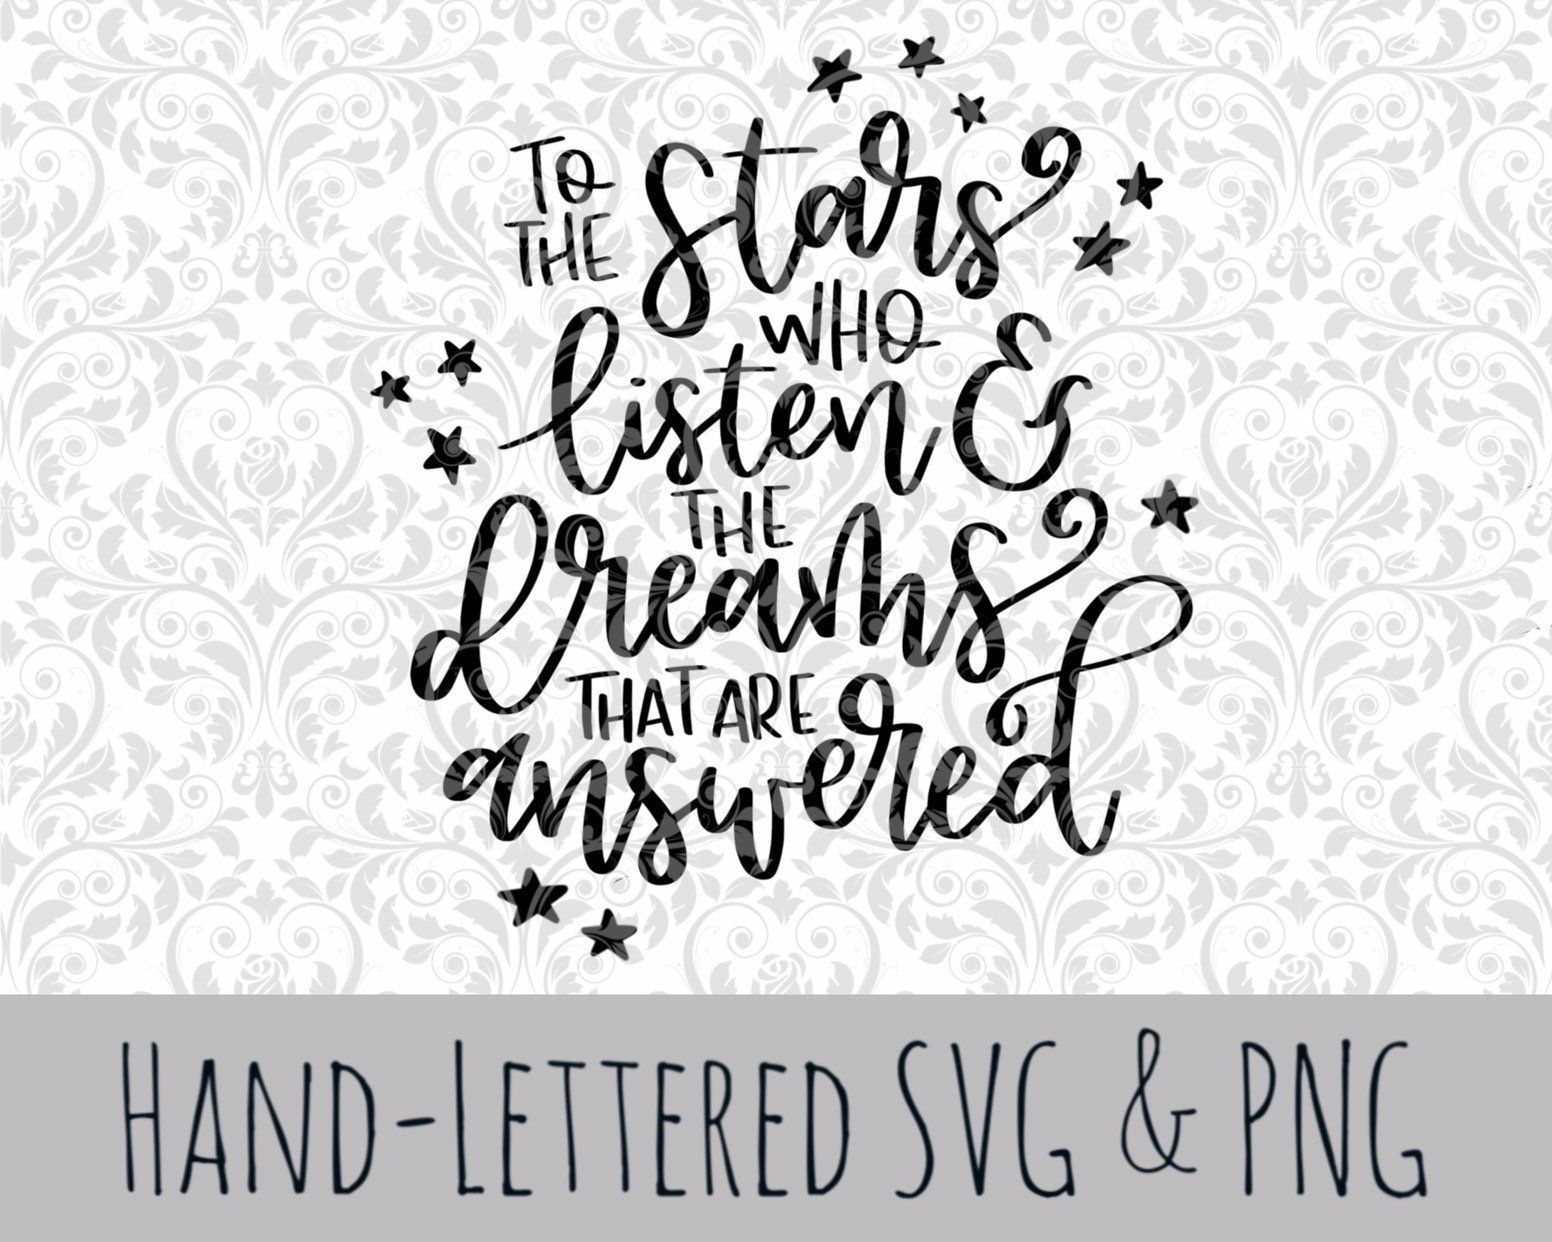 Pin on Hand Lettered SVGs